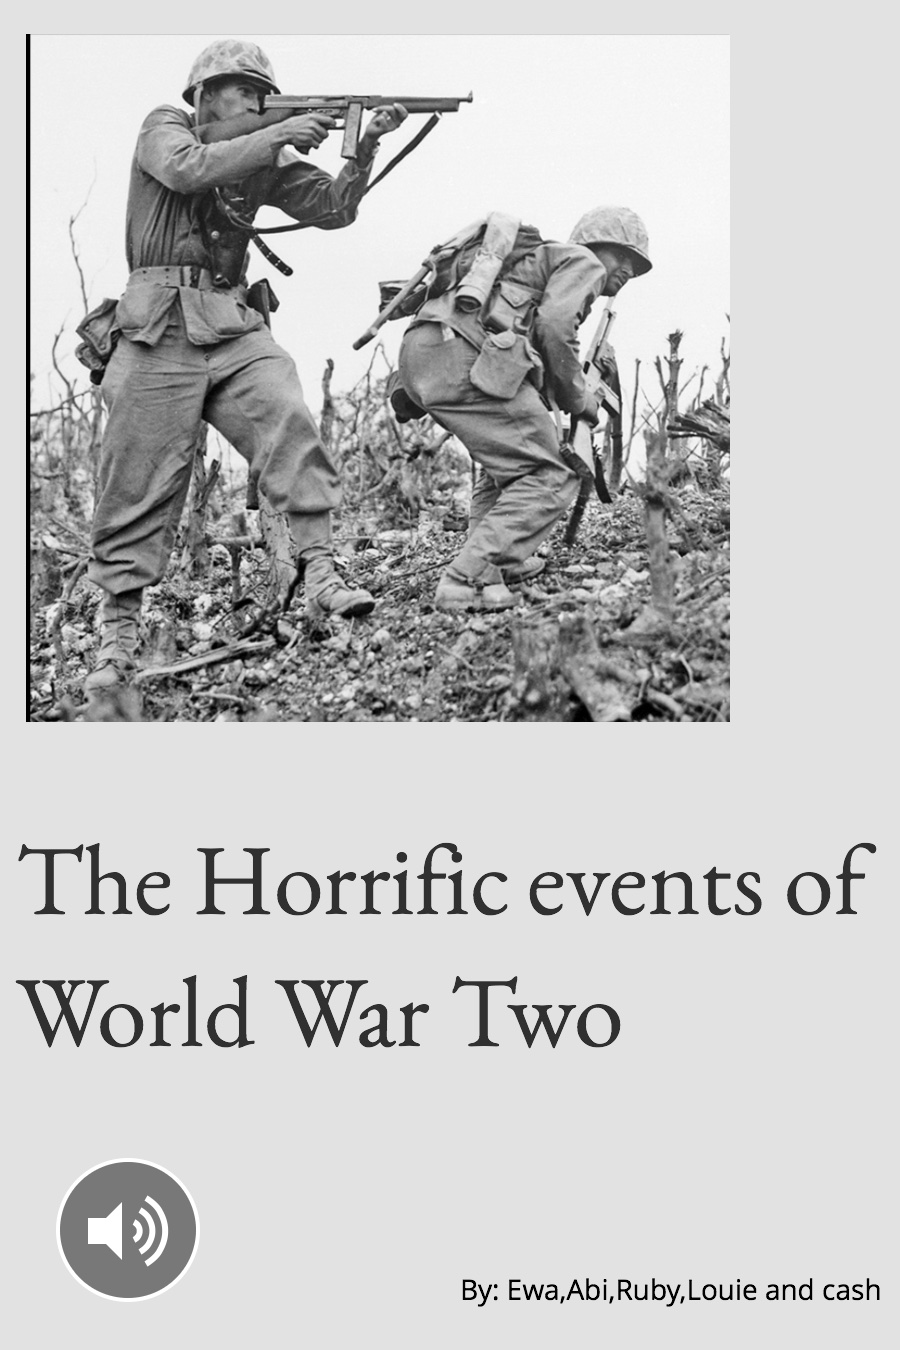 The Horrific Events Of World War II